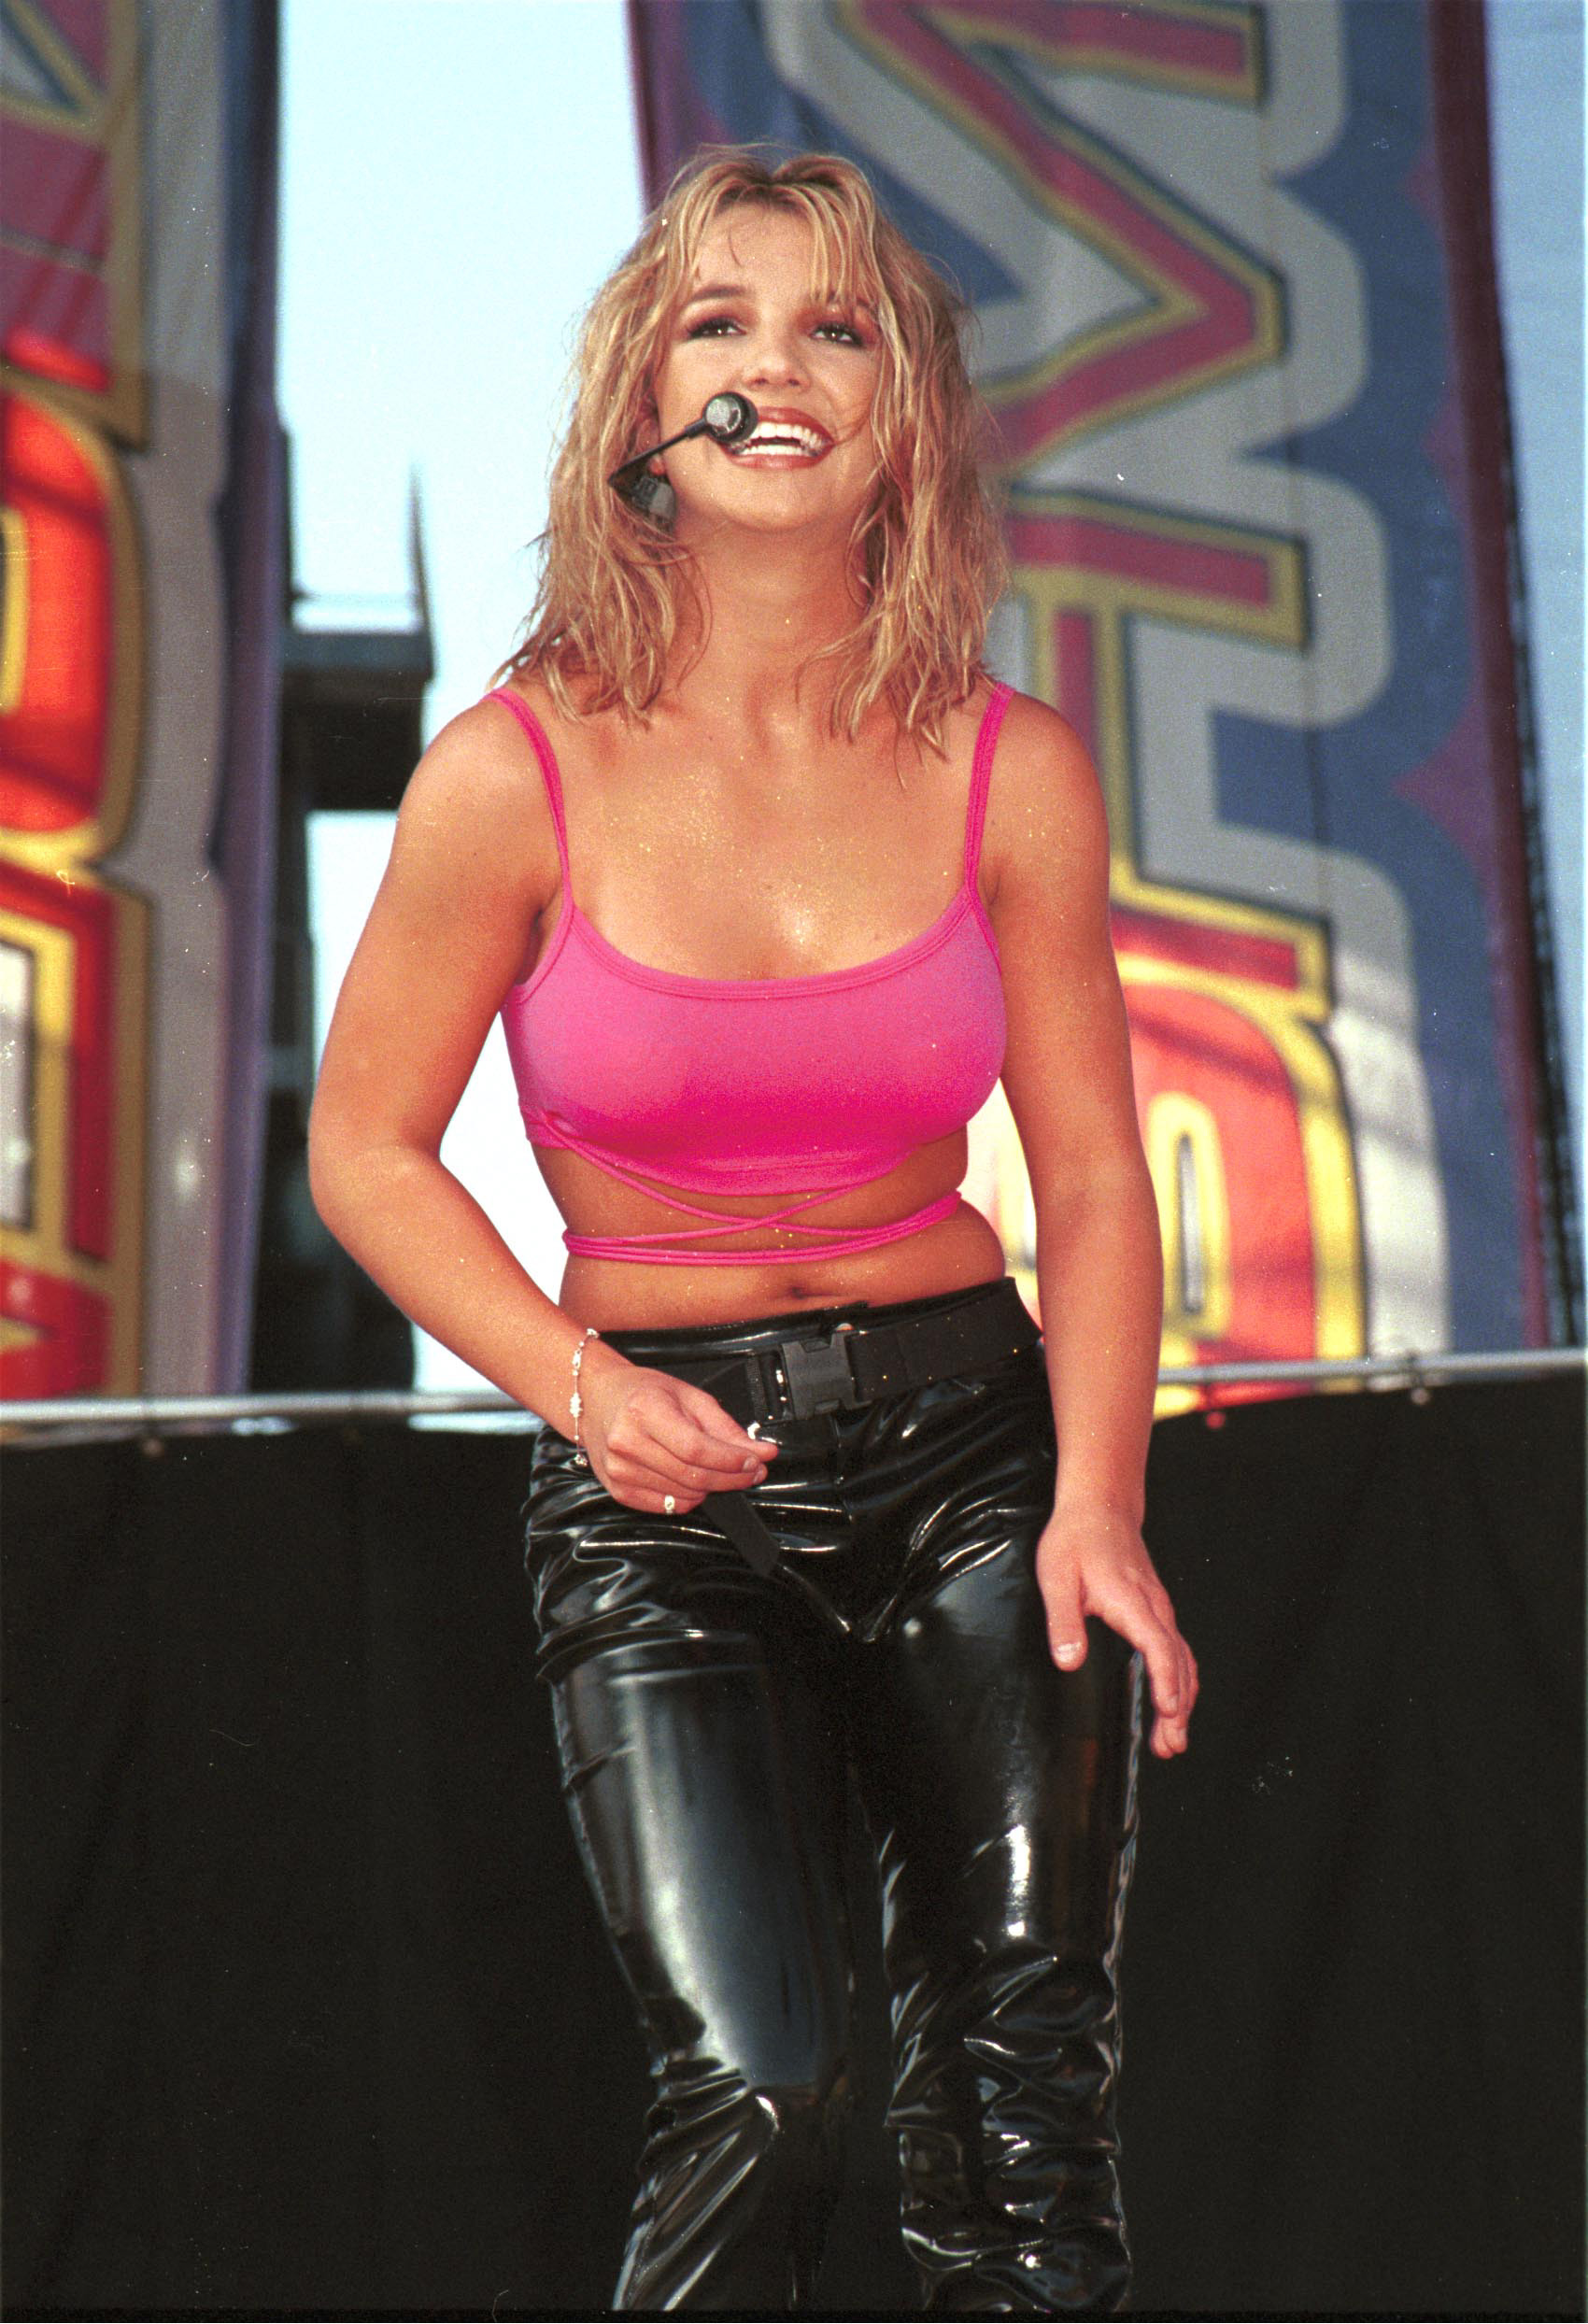 Britney Spears performing at Wango Tango 1999.